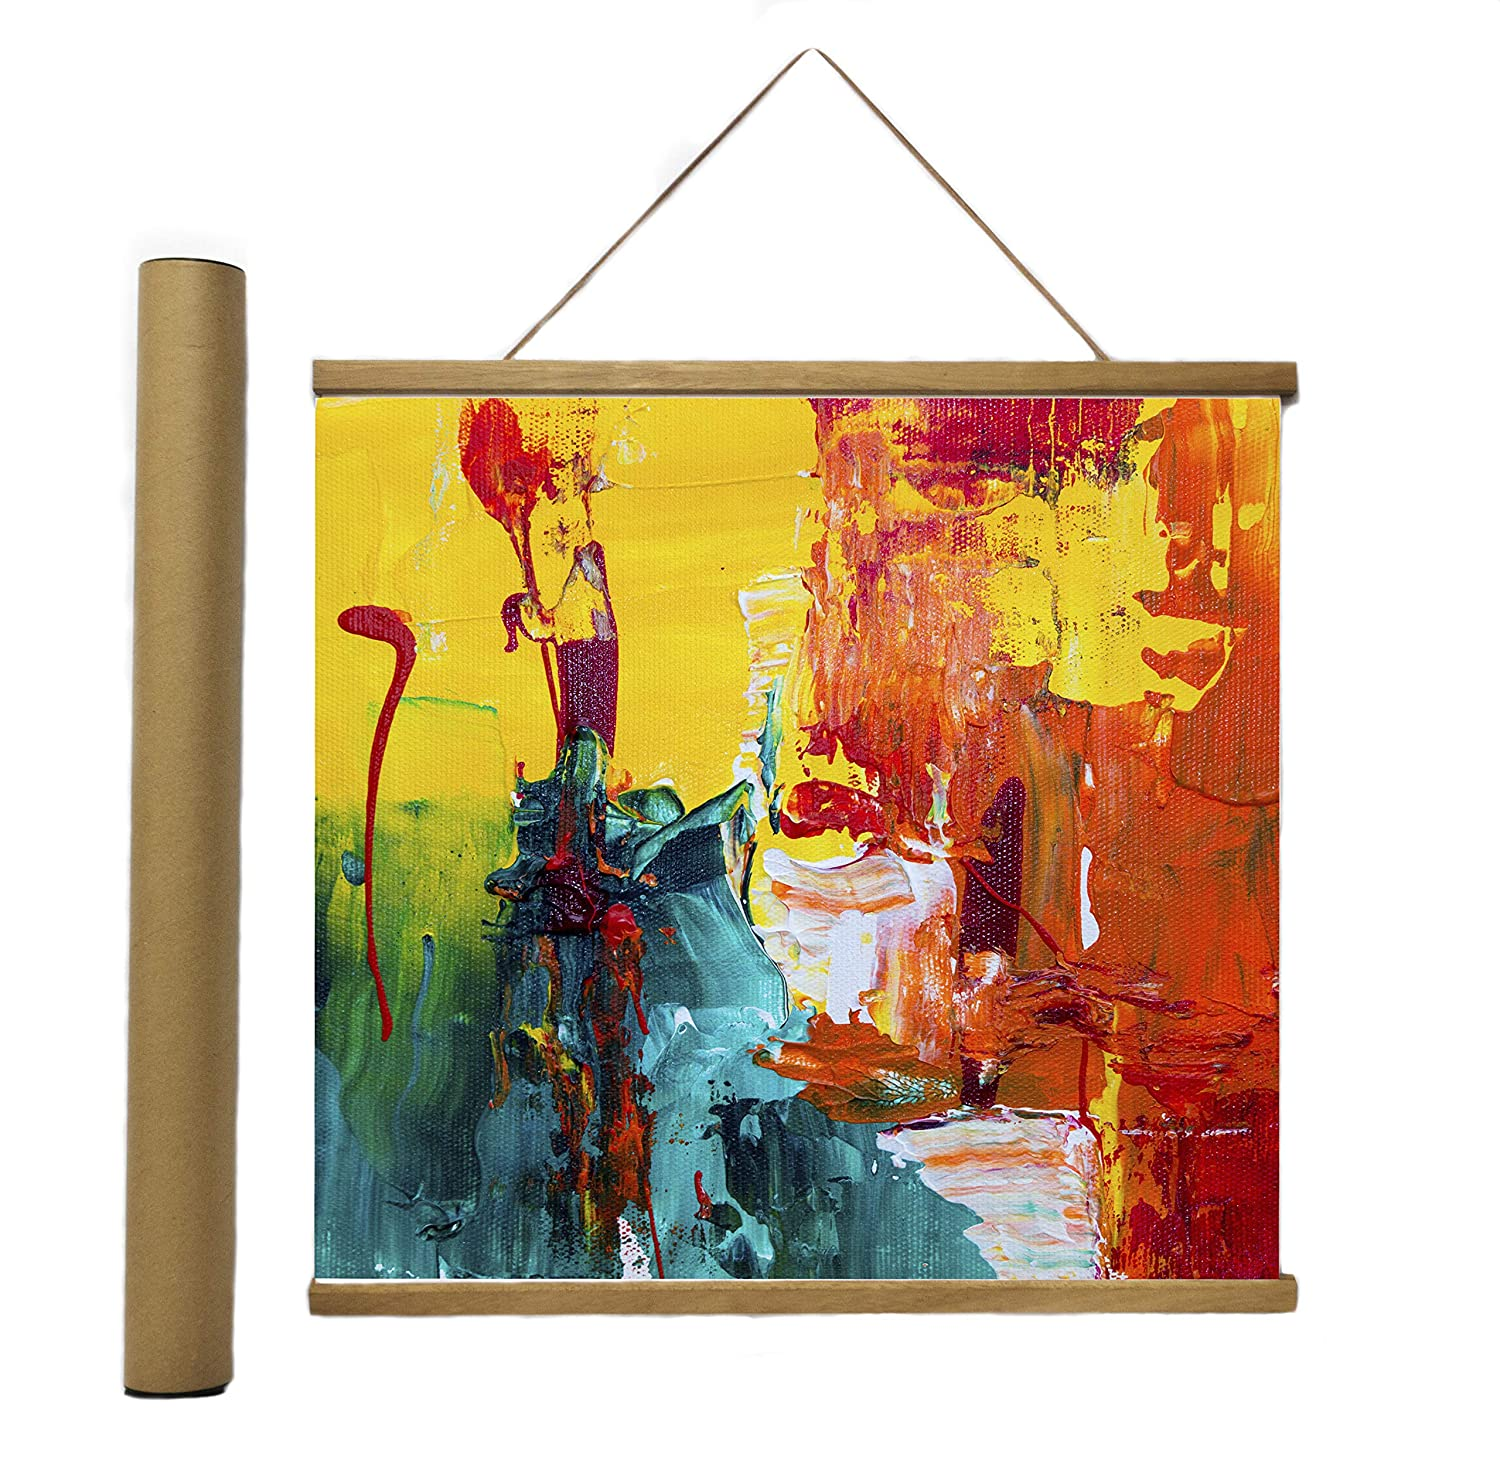 Vintage Posters. Canvas Map Modern Wooden Wall Frame Hanger for Office /& Home Decoration with Reinforced Magnets 2pack, 24 Can be Used for Photo GemArt 24x36 Magnetic Poster Frame Print